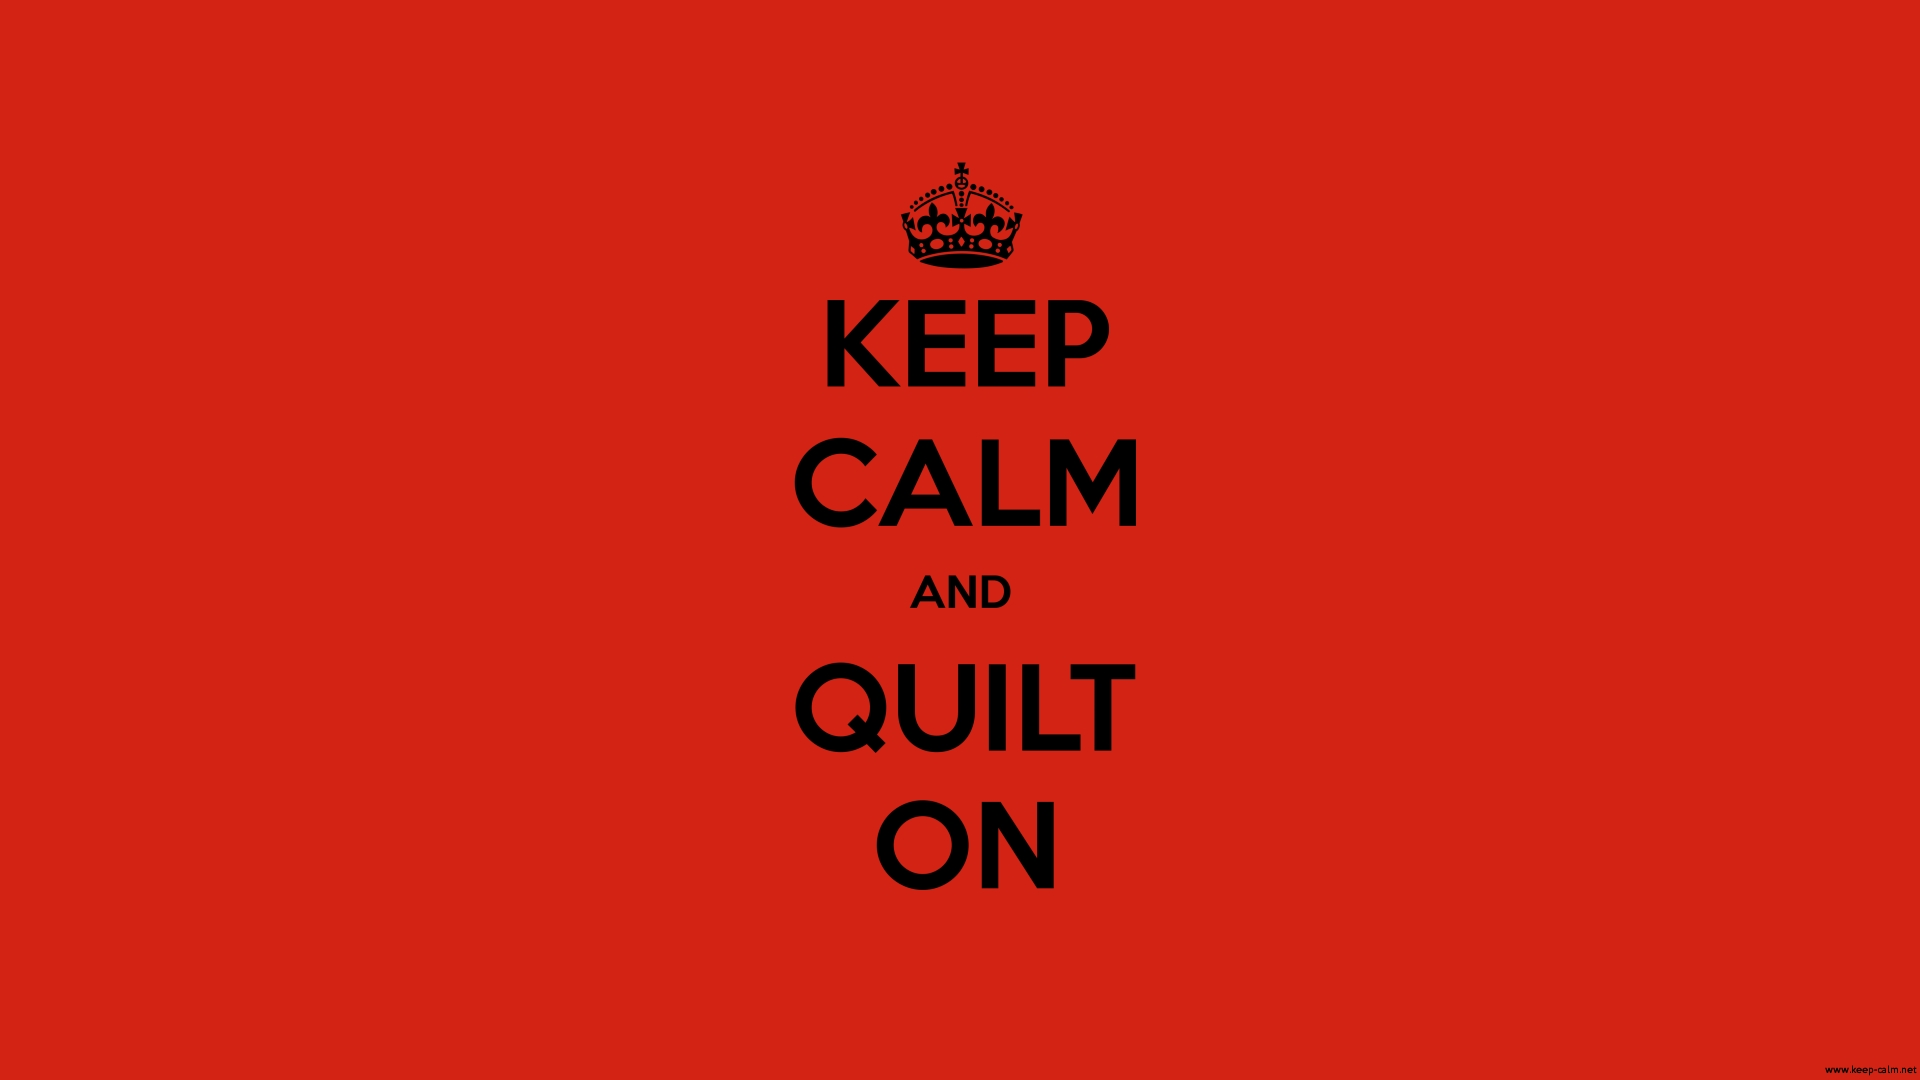 keep-calm-and-quilt-on-1920-1080-black-red